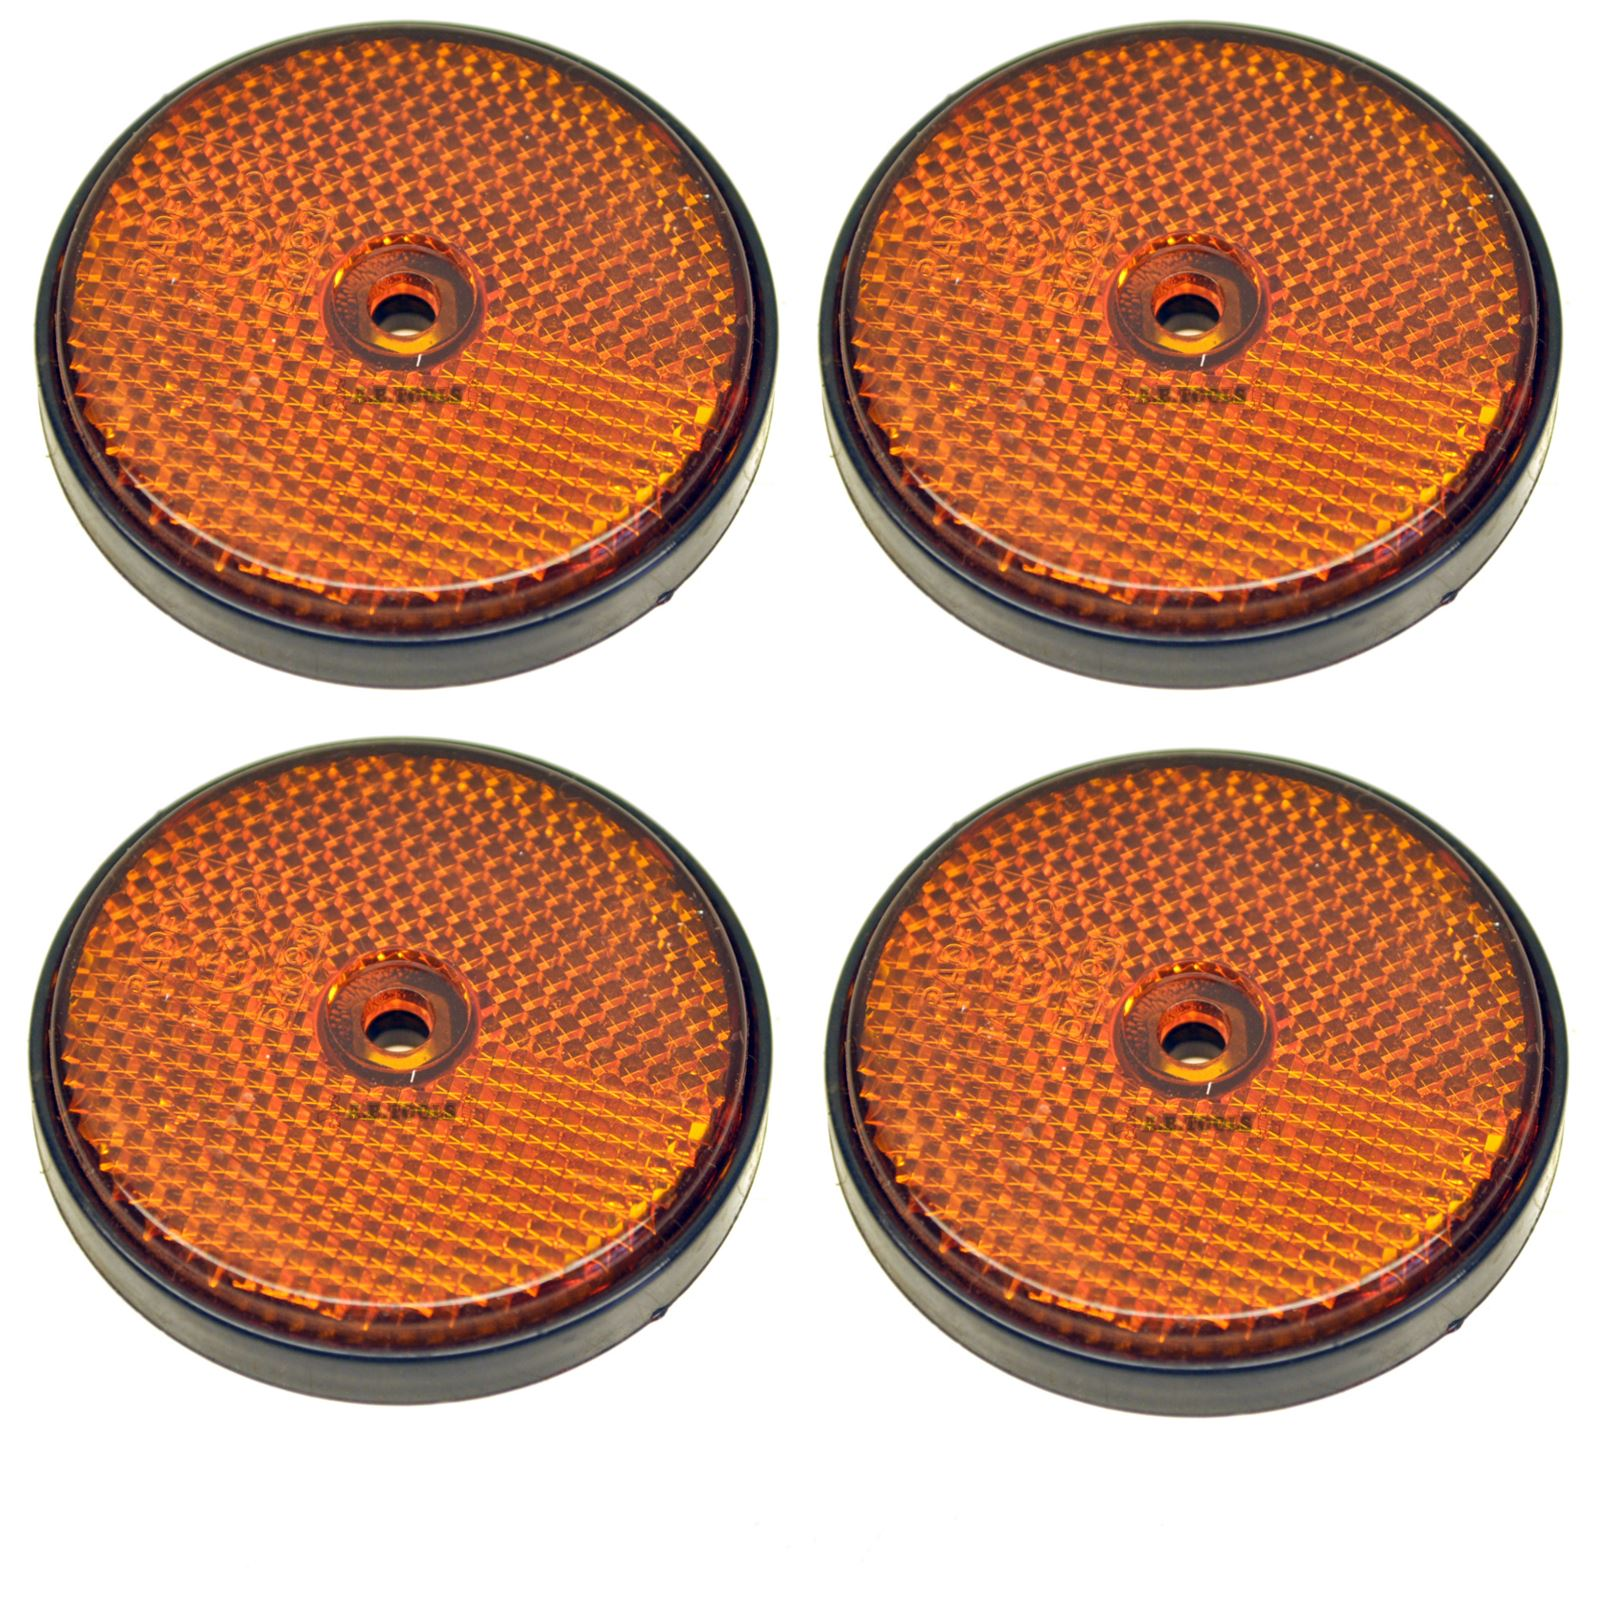 Red-Amber-White-Reflector-Packs-for-Trailers-Fence-Gate-Posts-Round-Large thumbnail 4